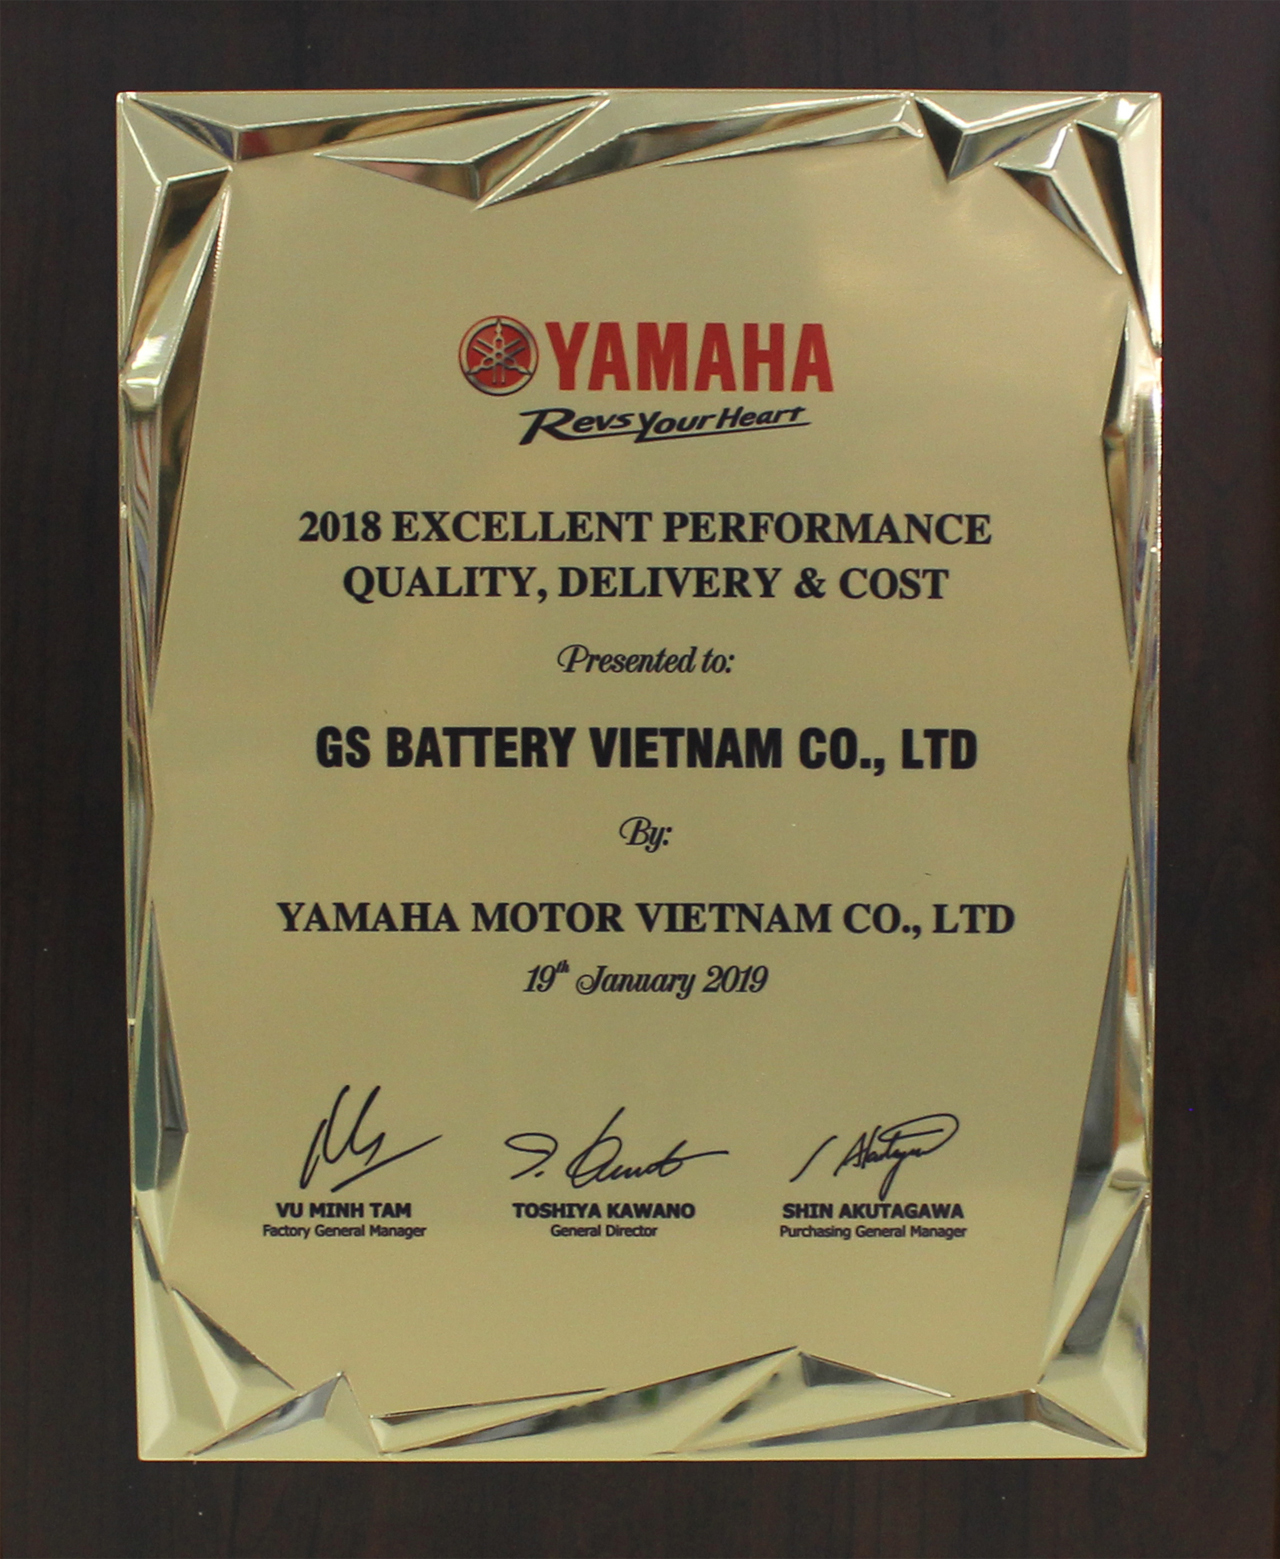 "GSV WAS HONORLY AWARDED THE CERTIFICATE FOR ""2018 EXCELLENT PERFORMANCE QUALITY, DELIVERY & COST"" BY YAMAHA MOTOR VIETNAM"